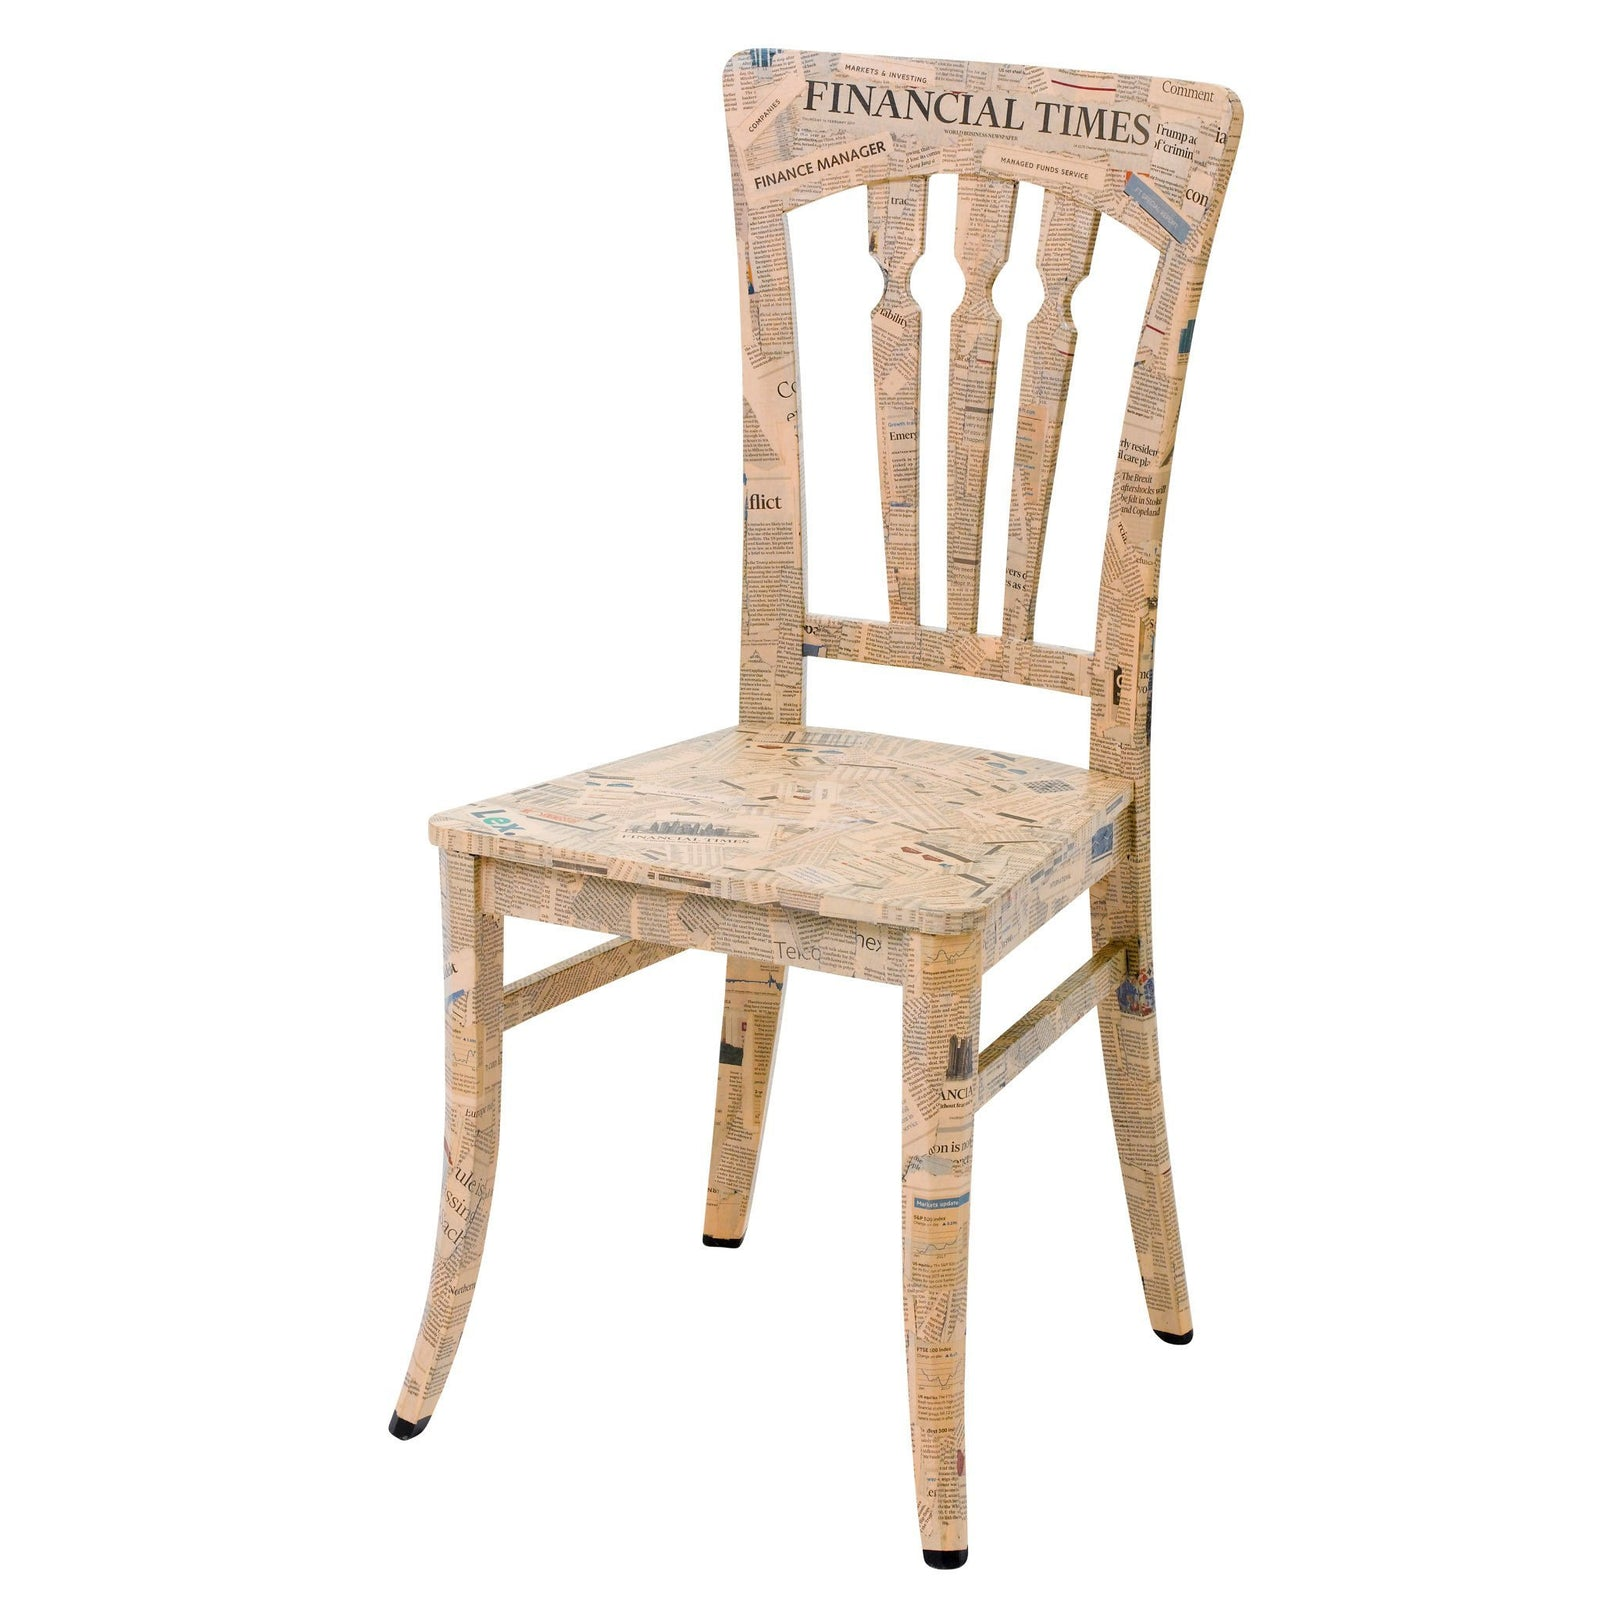 The FT Chair